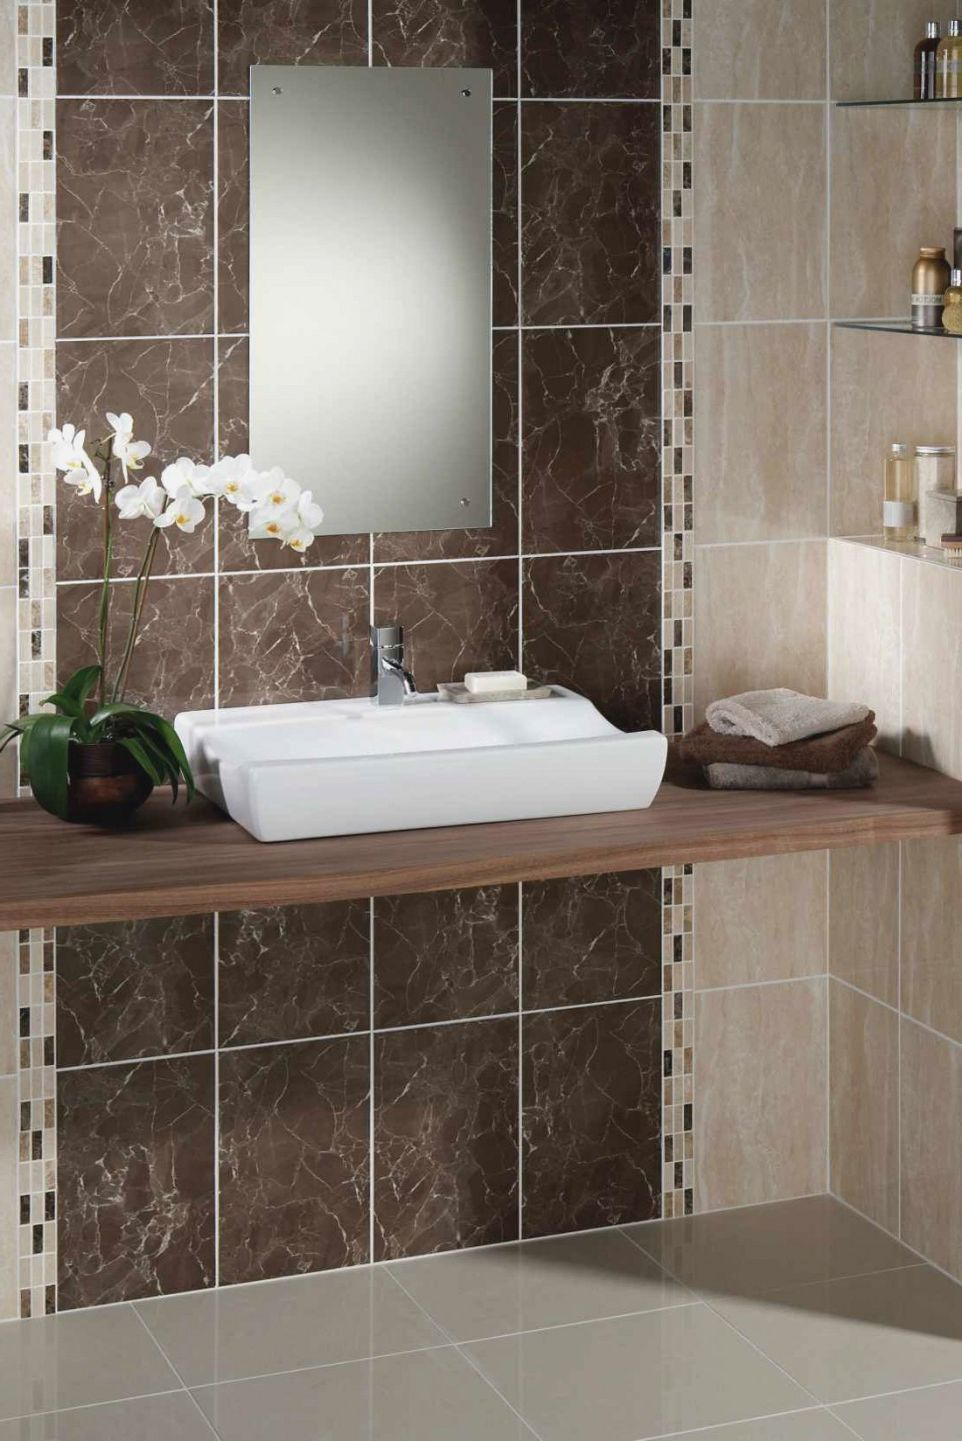 bathroom-tile-ideas-neutral-bathroom-attractive-brown-neutral-bathroom-with-pretty-floating-Picture-HD-Wallpapers-new-modern-design